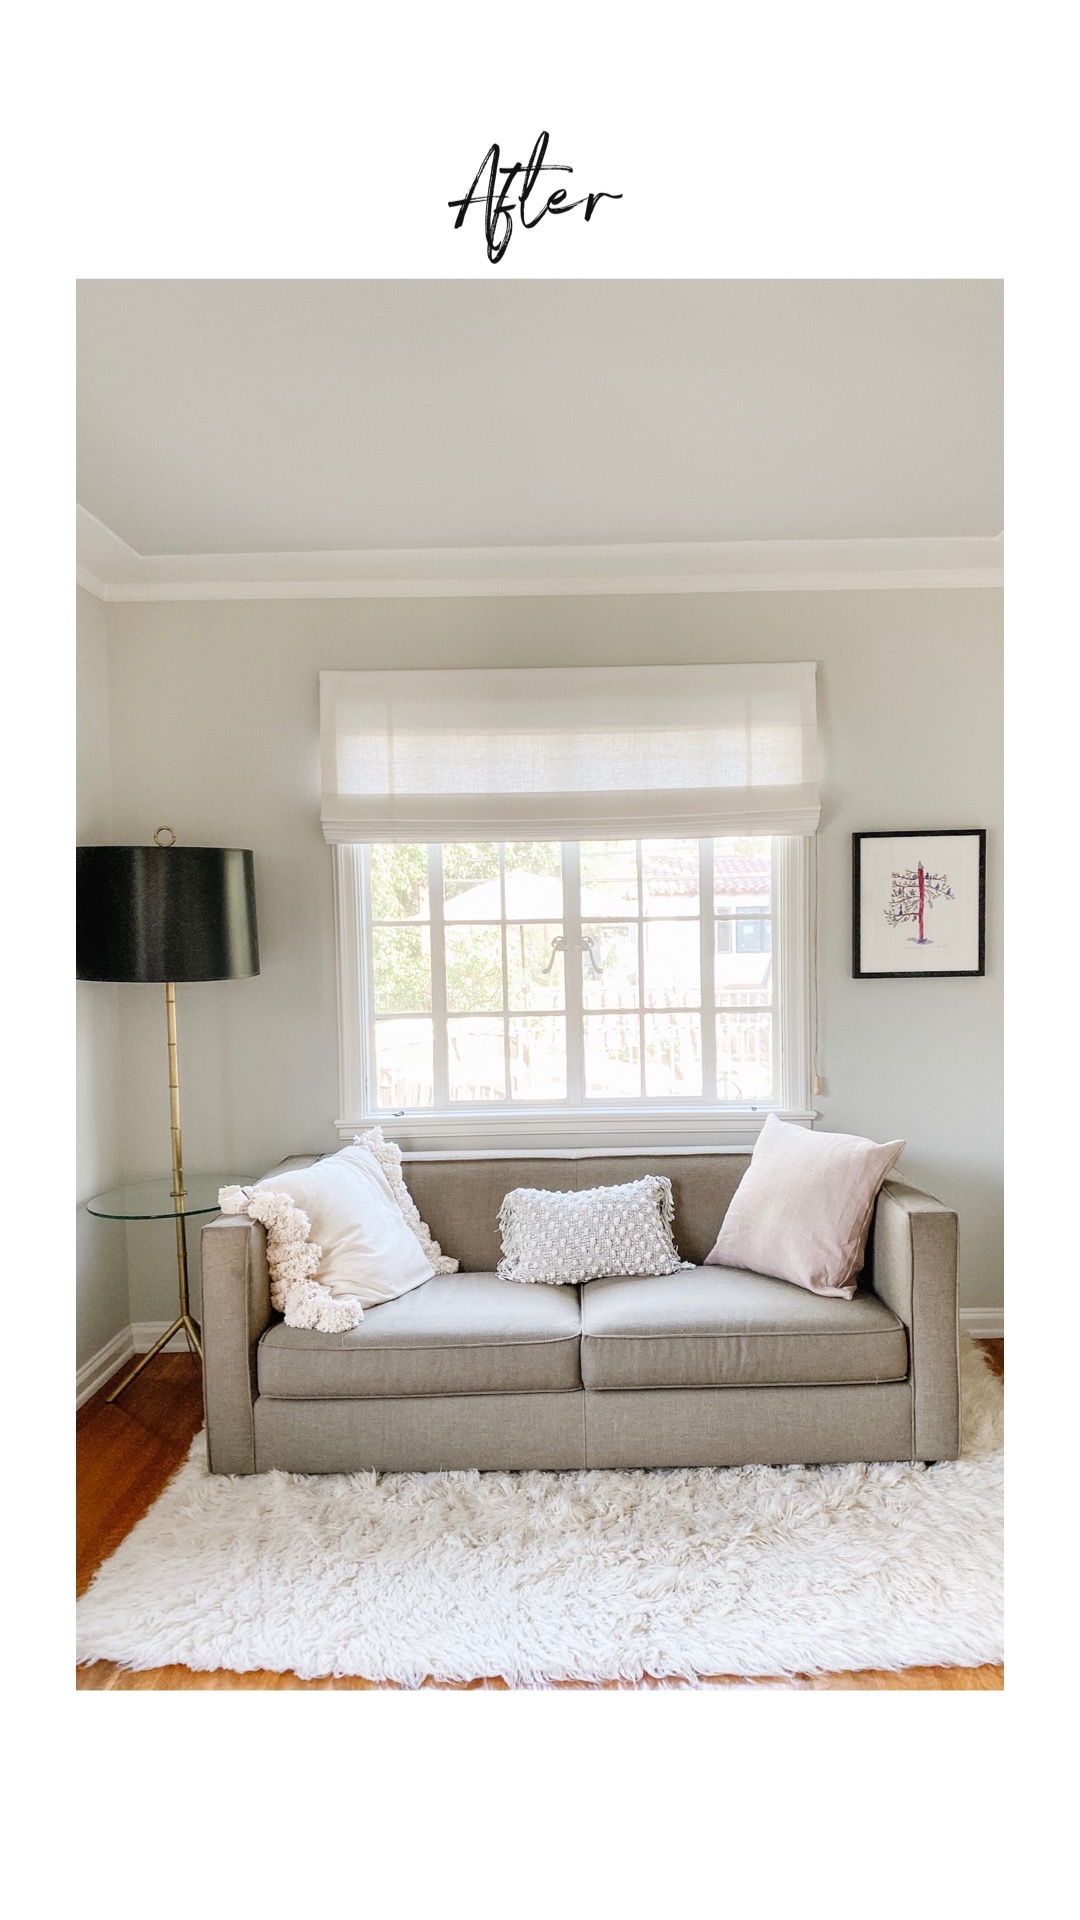 Scandinavian-style living room sees before and after renovation with Roman shades on large window